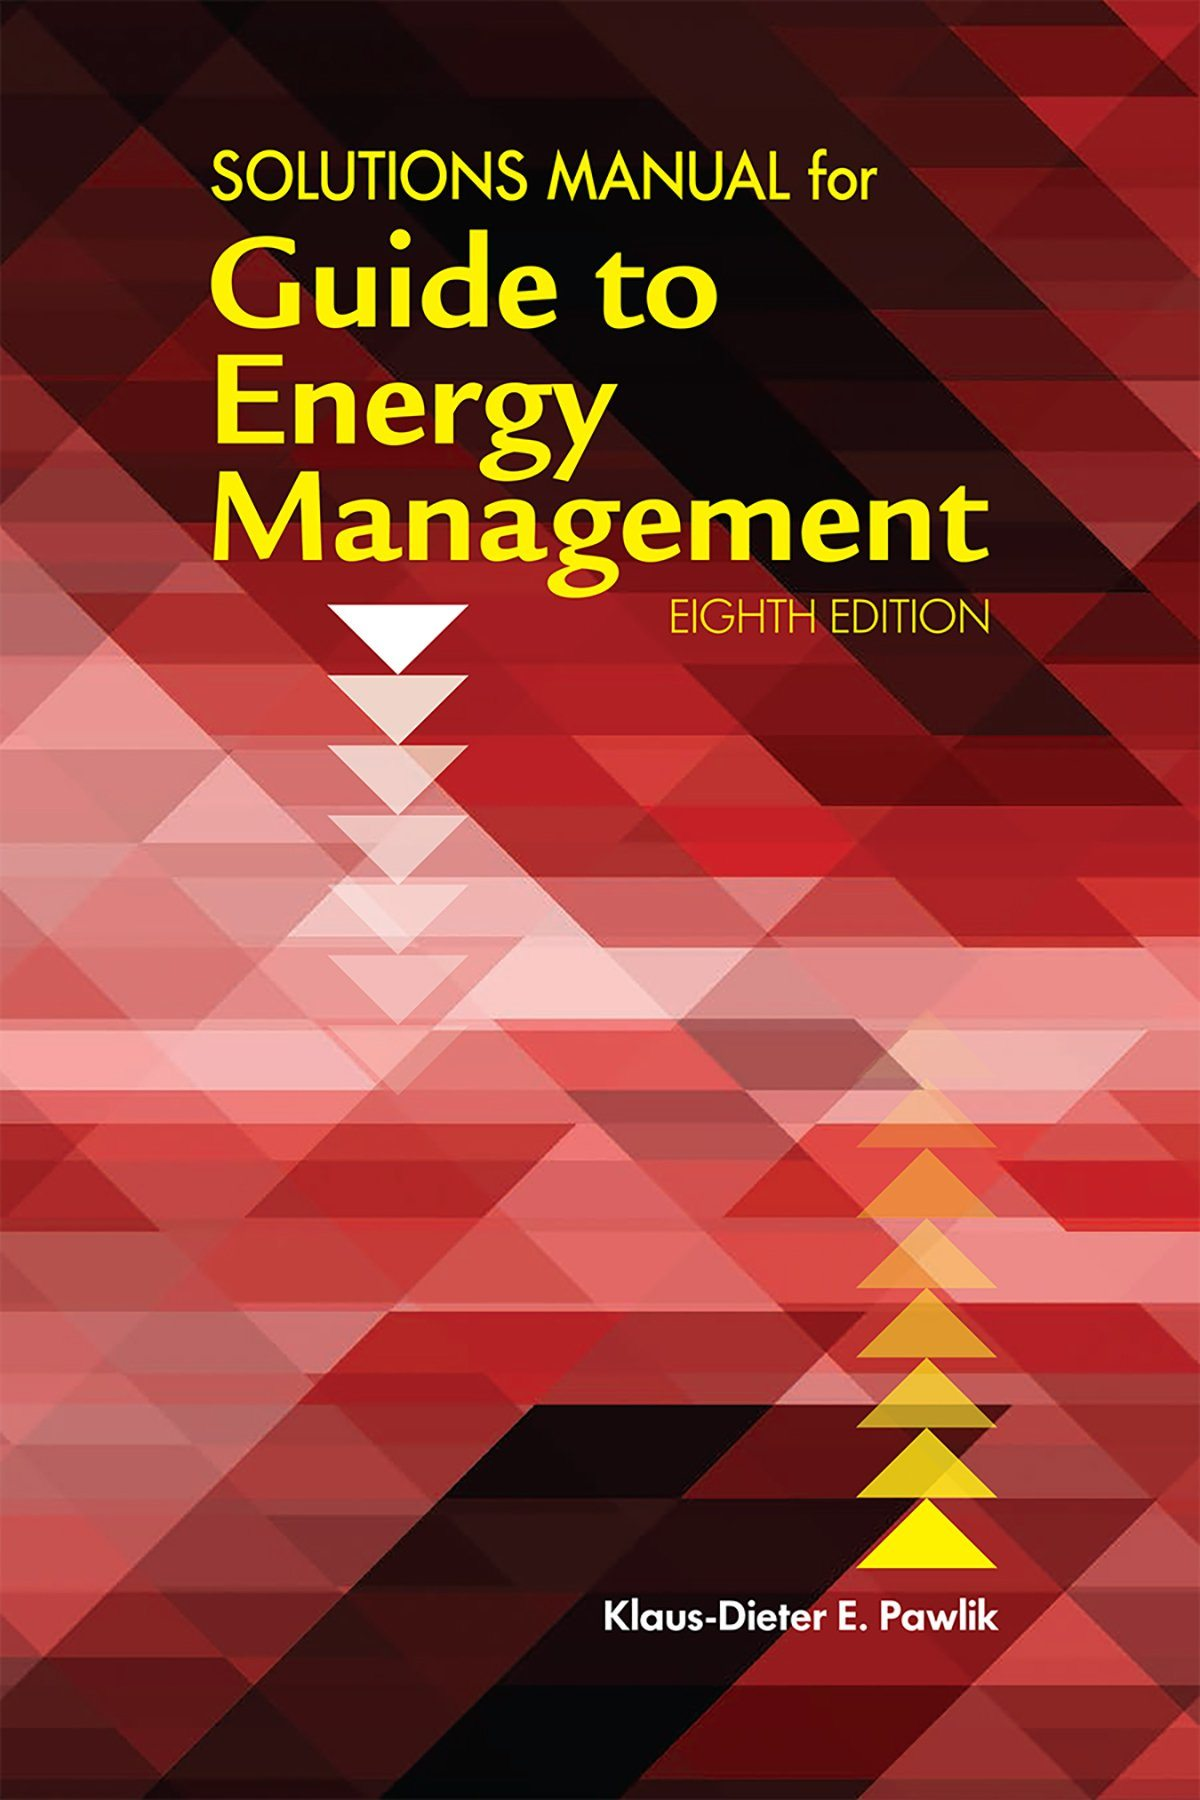 Solutions Manual for Guide to Energy Management, 8th ed.